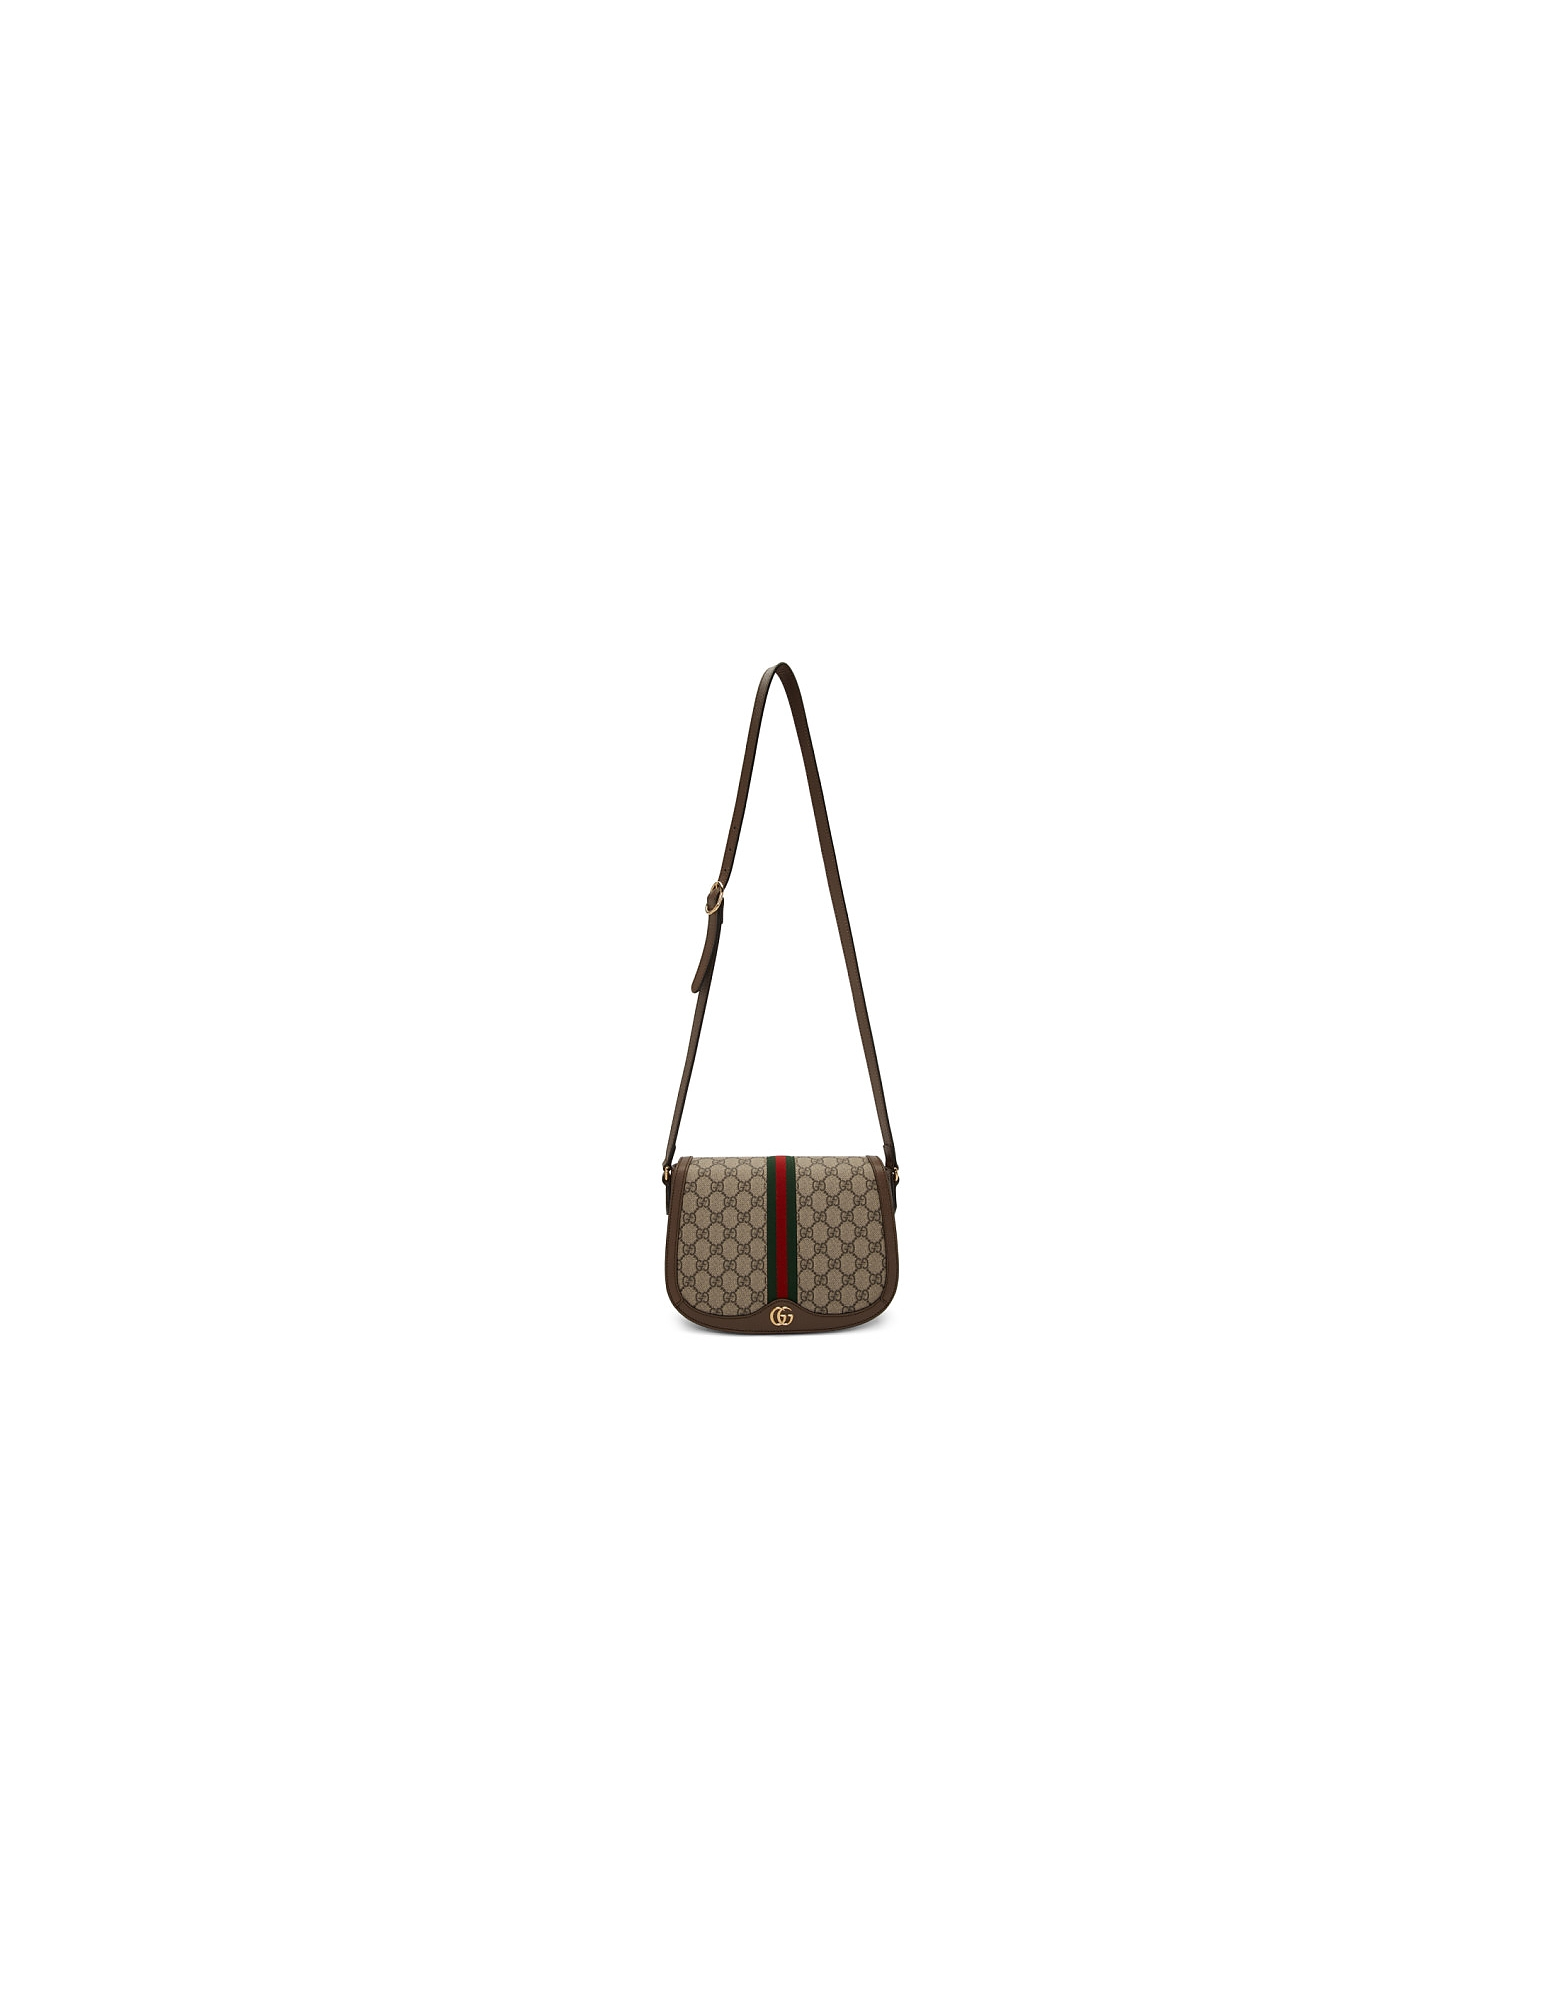 Gucci Designer Handbags, Beige and Brown Small GG Ophidia Shoulder Bag